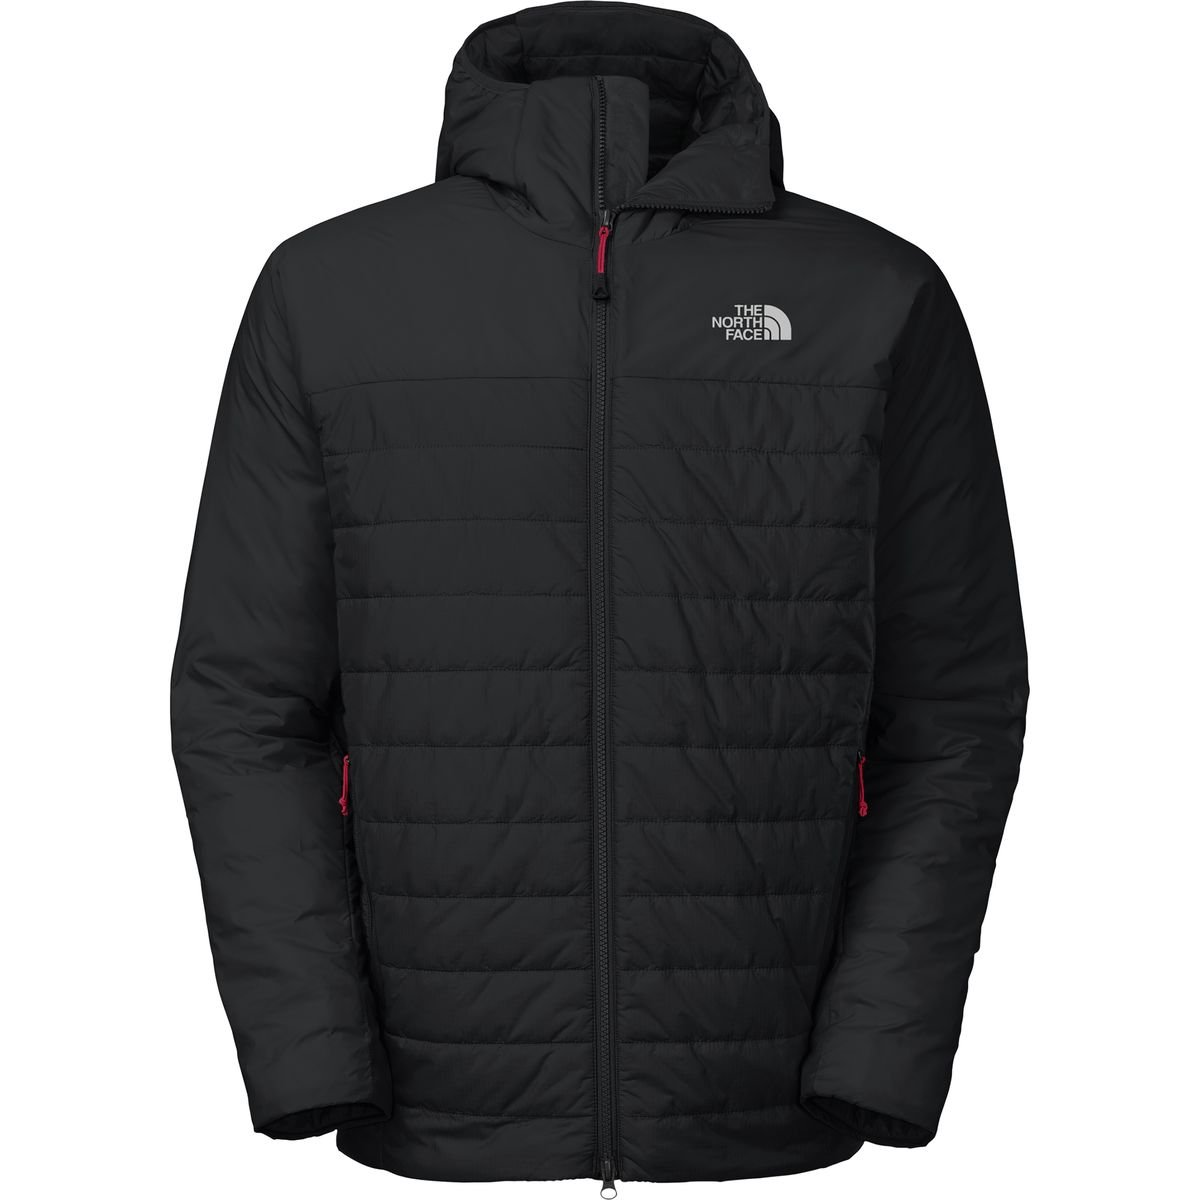 570eb2cc55 The North Face Men s Victory Hooded Jacket at Amazon Men s Clothing store